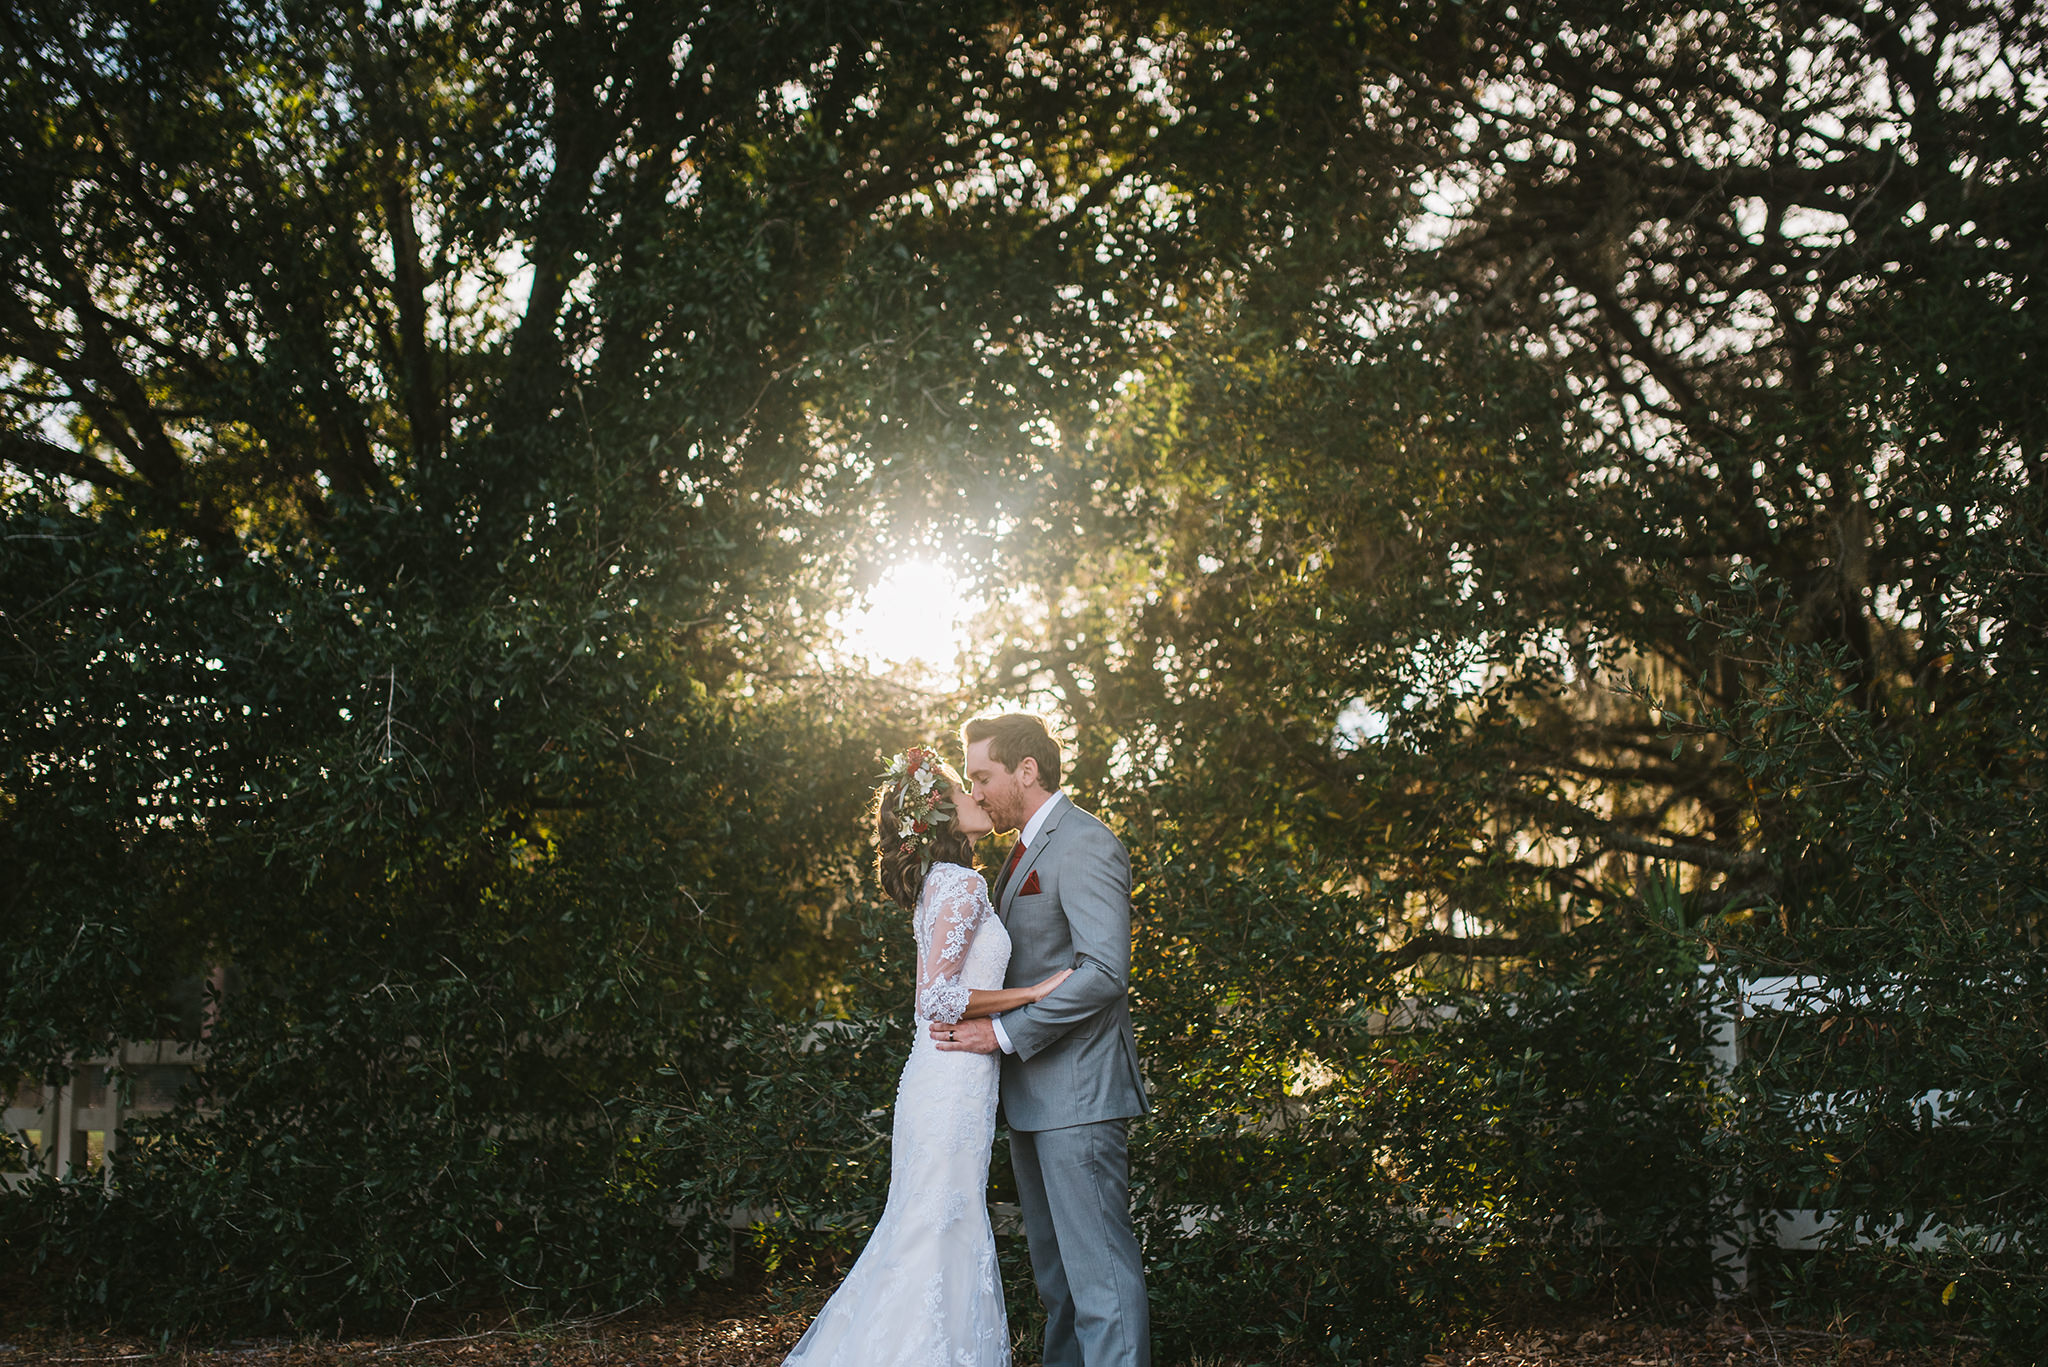 Rudy & Marta Photography - bride and groom kiss with sunlight through the trees behind them